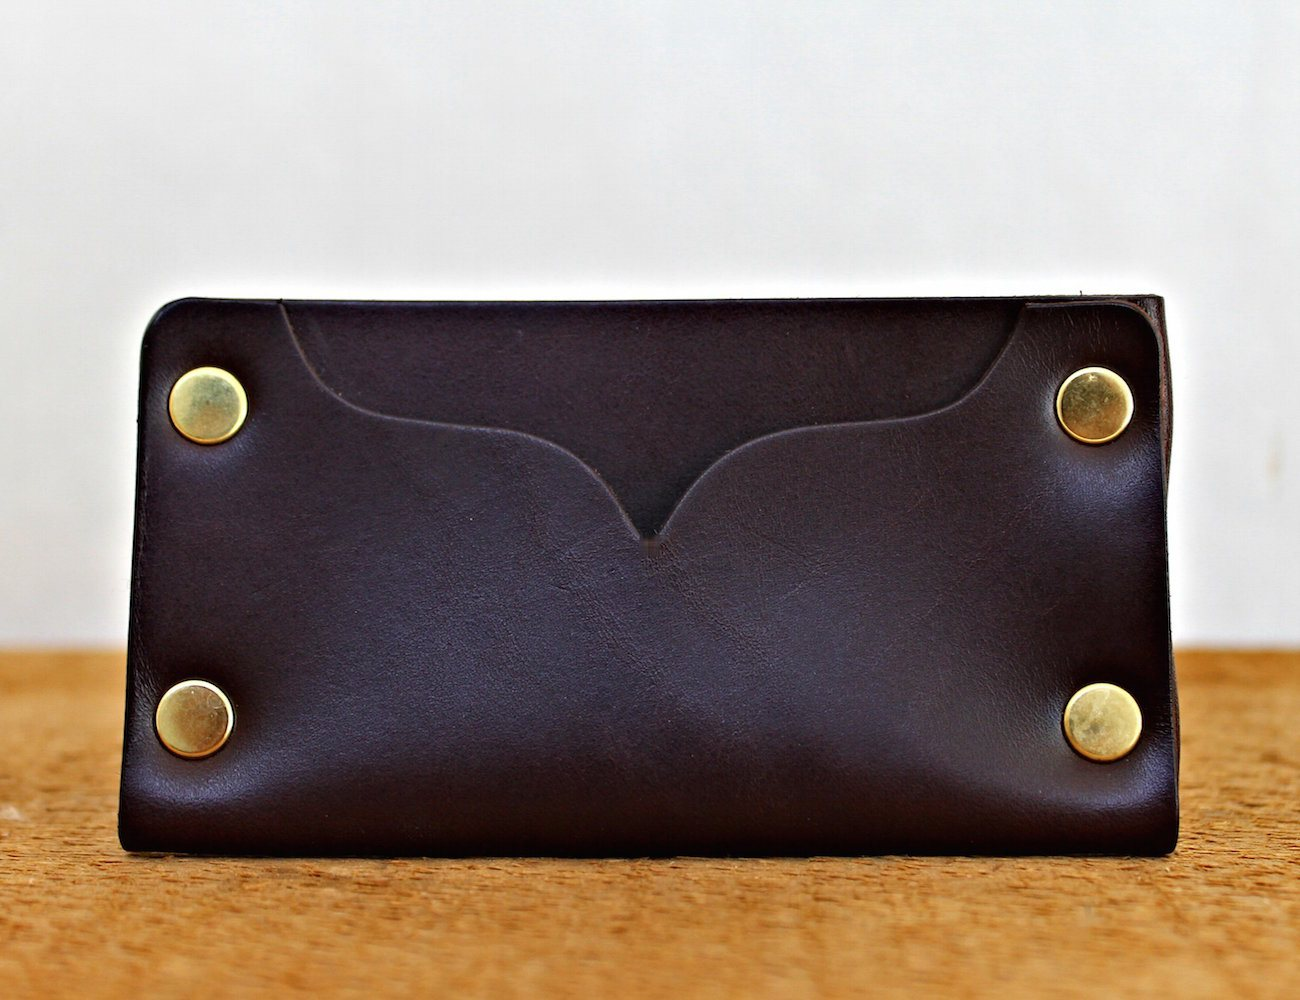 Riveted Leather Cardholder by American Bench Craft